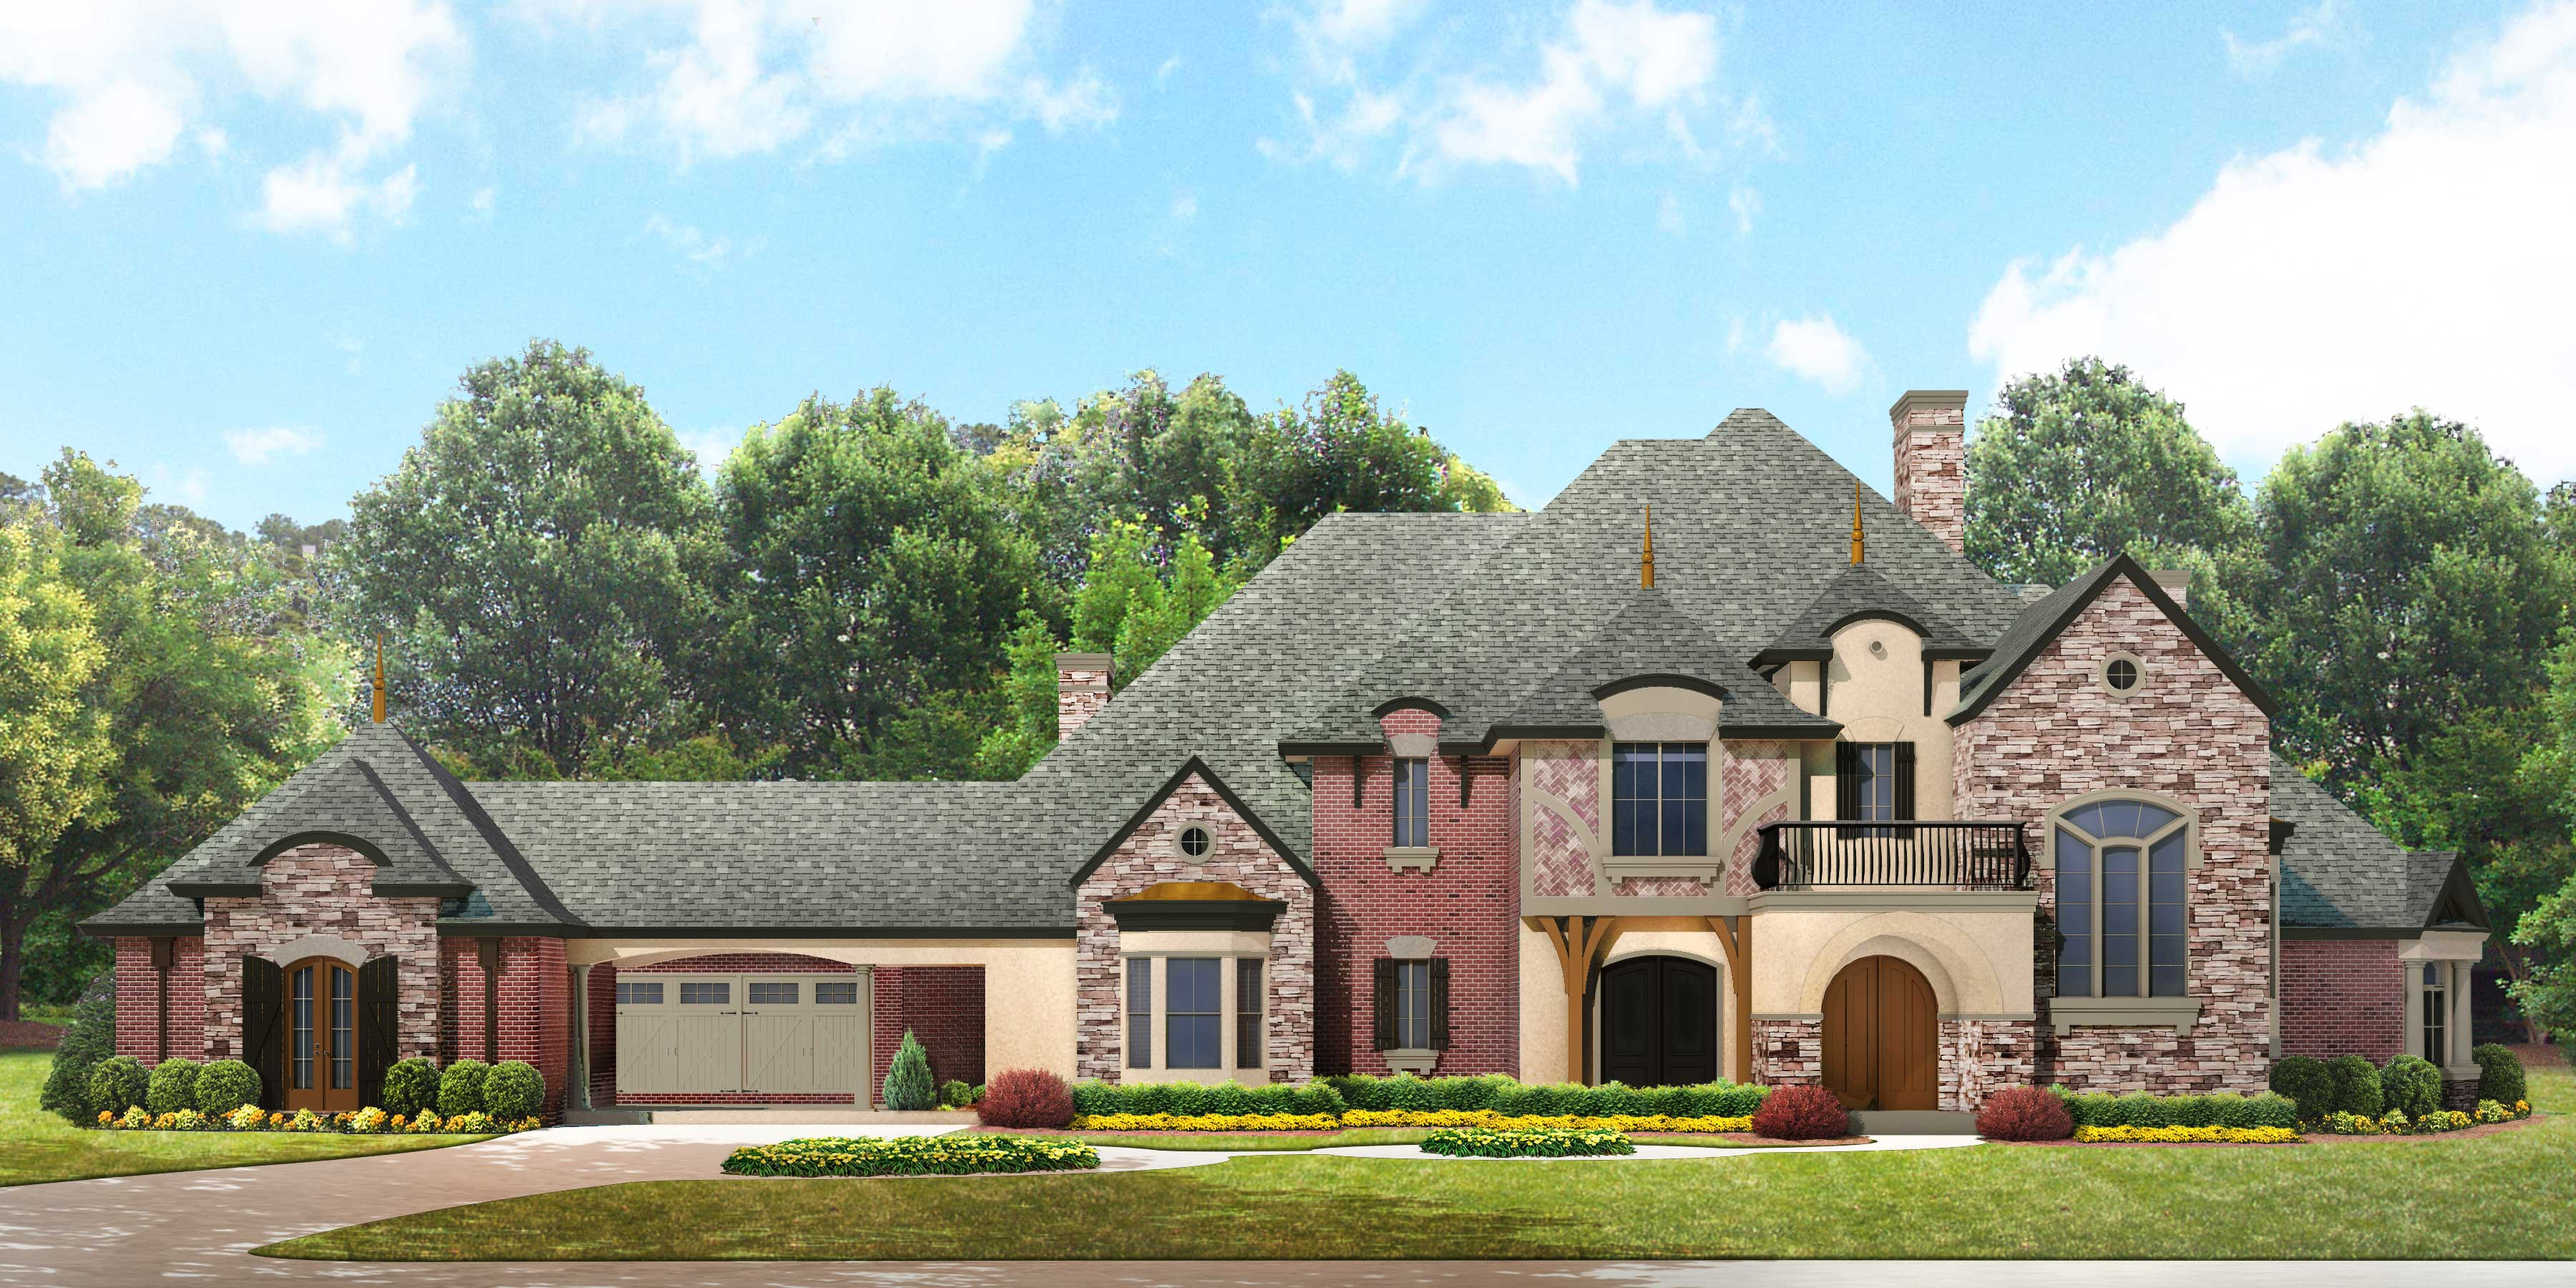 European manor house plan 134 1350 4 bedrm 5303 sq ft for New luxury home plans